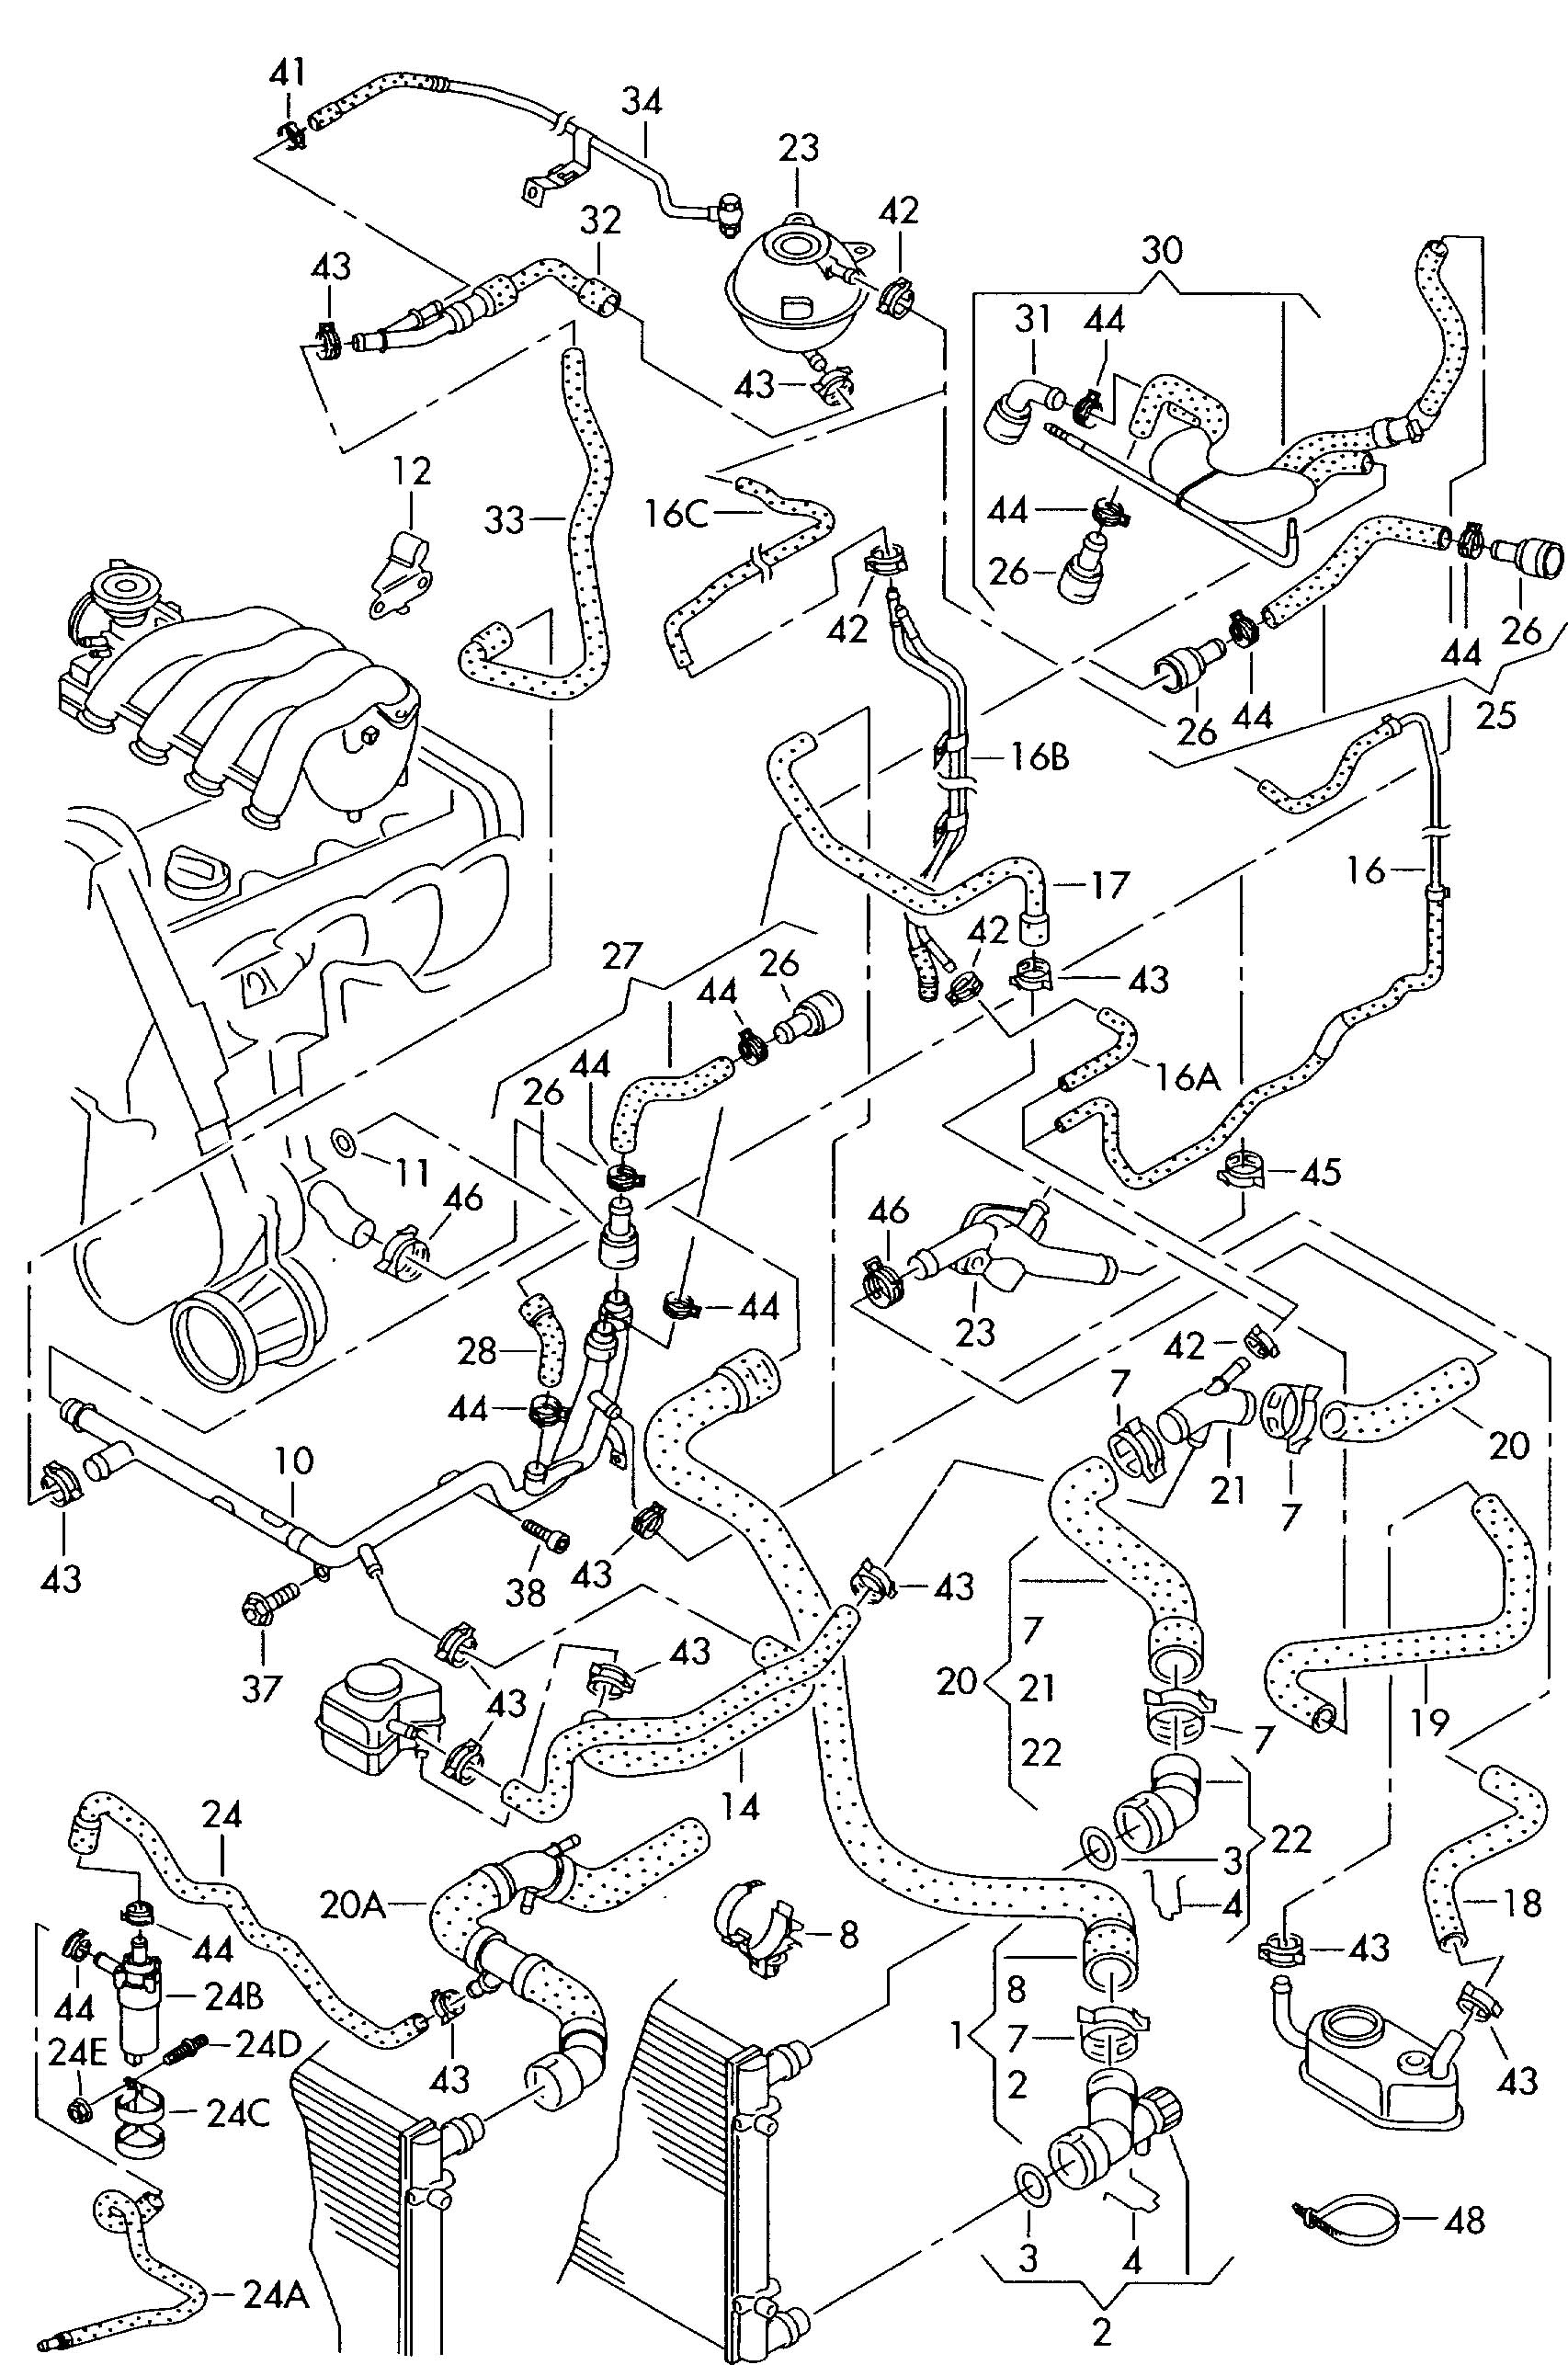 2001 Jetta Parts Diagram, 2001, Free Engine Image For User